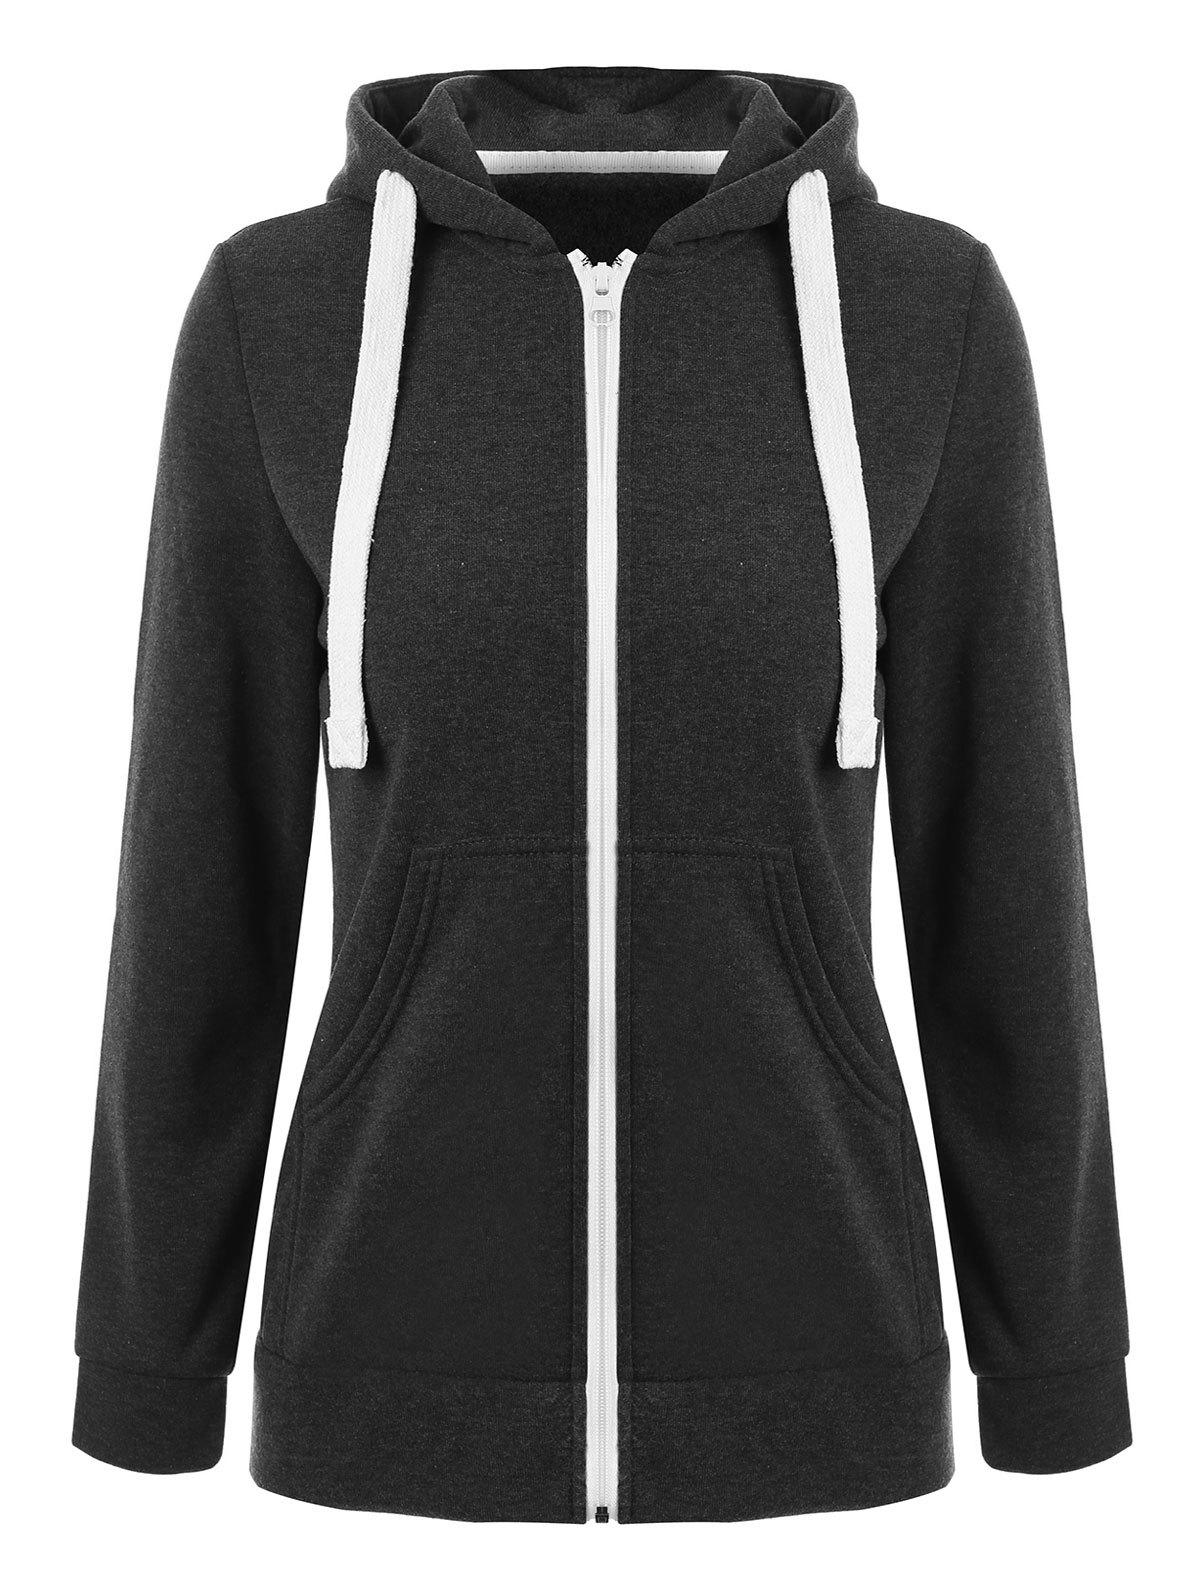 Front Pocket Zip Up HoodieWOMEN<br><br>Size: S; Color: DEEP GRAY; Material: Polyester; Shirt Length: Regular; Sleeve Length: Full; Style: Fashion; Pattern Style: Solid; Season: Fall,Spring; Weight: 0.4000kg; Package Contents: 1 x Hoodie;